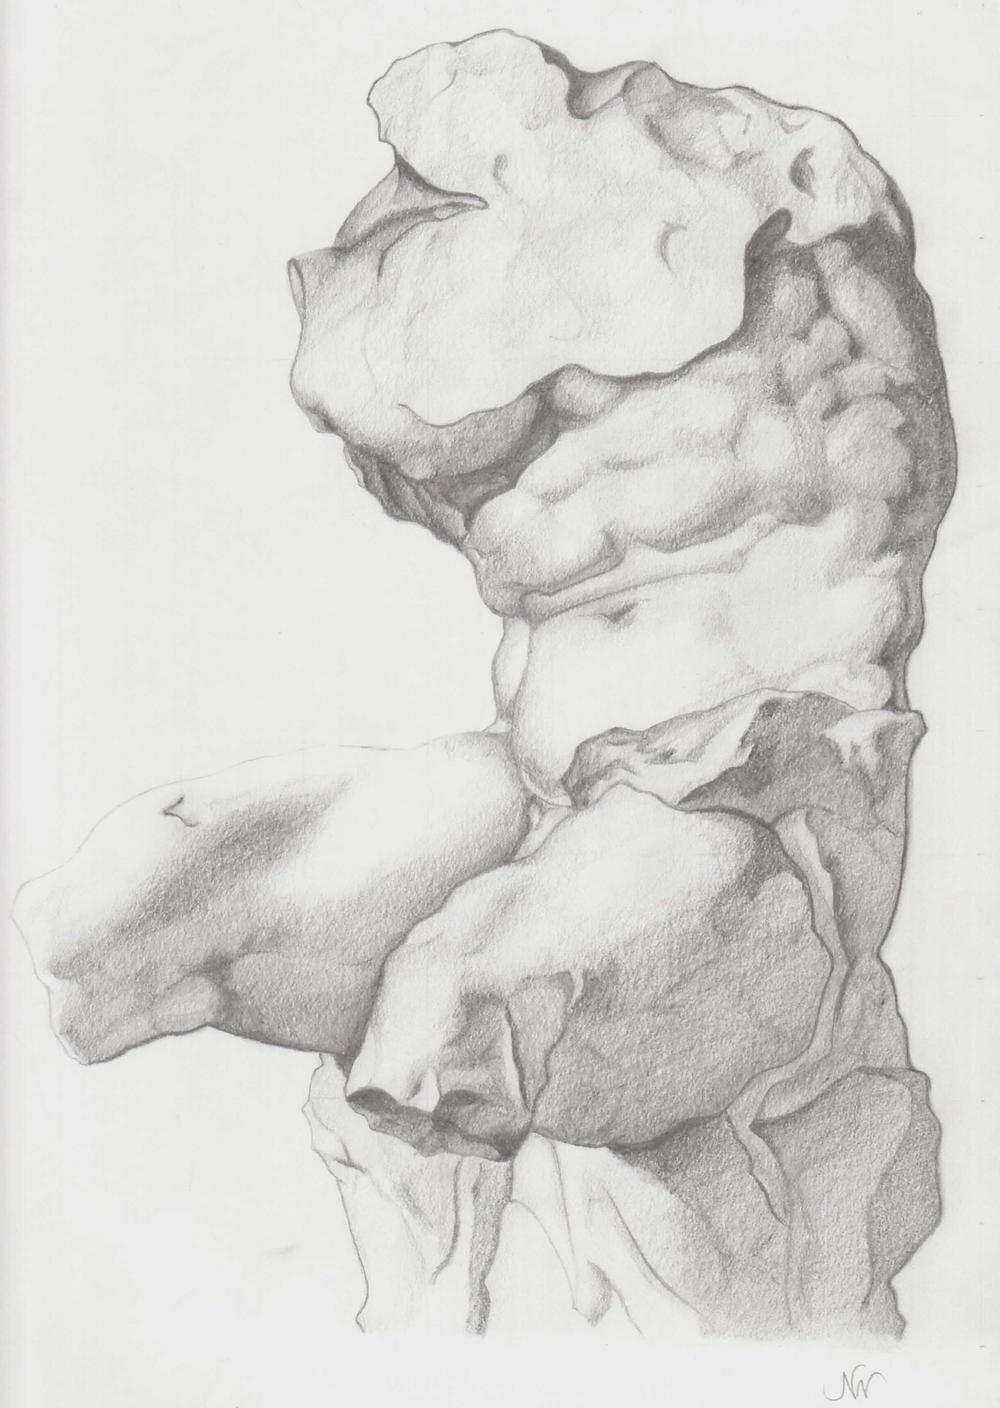 Sculpture, 2010 | graphite, 9 x 12 in